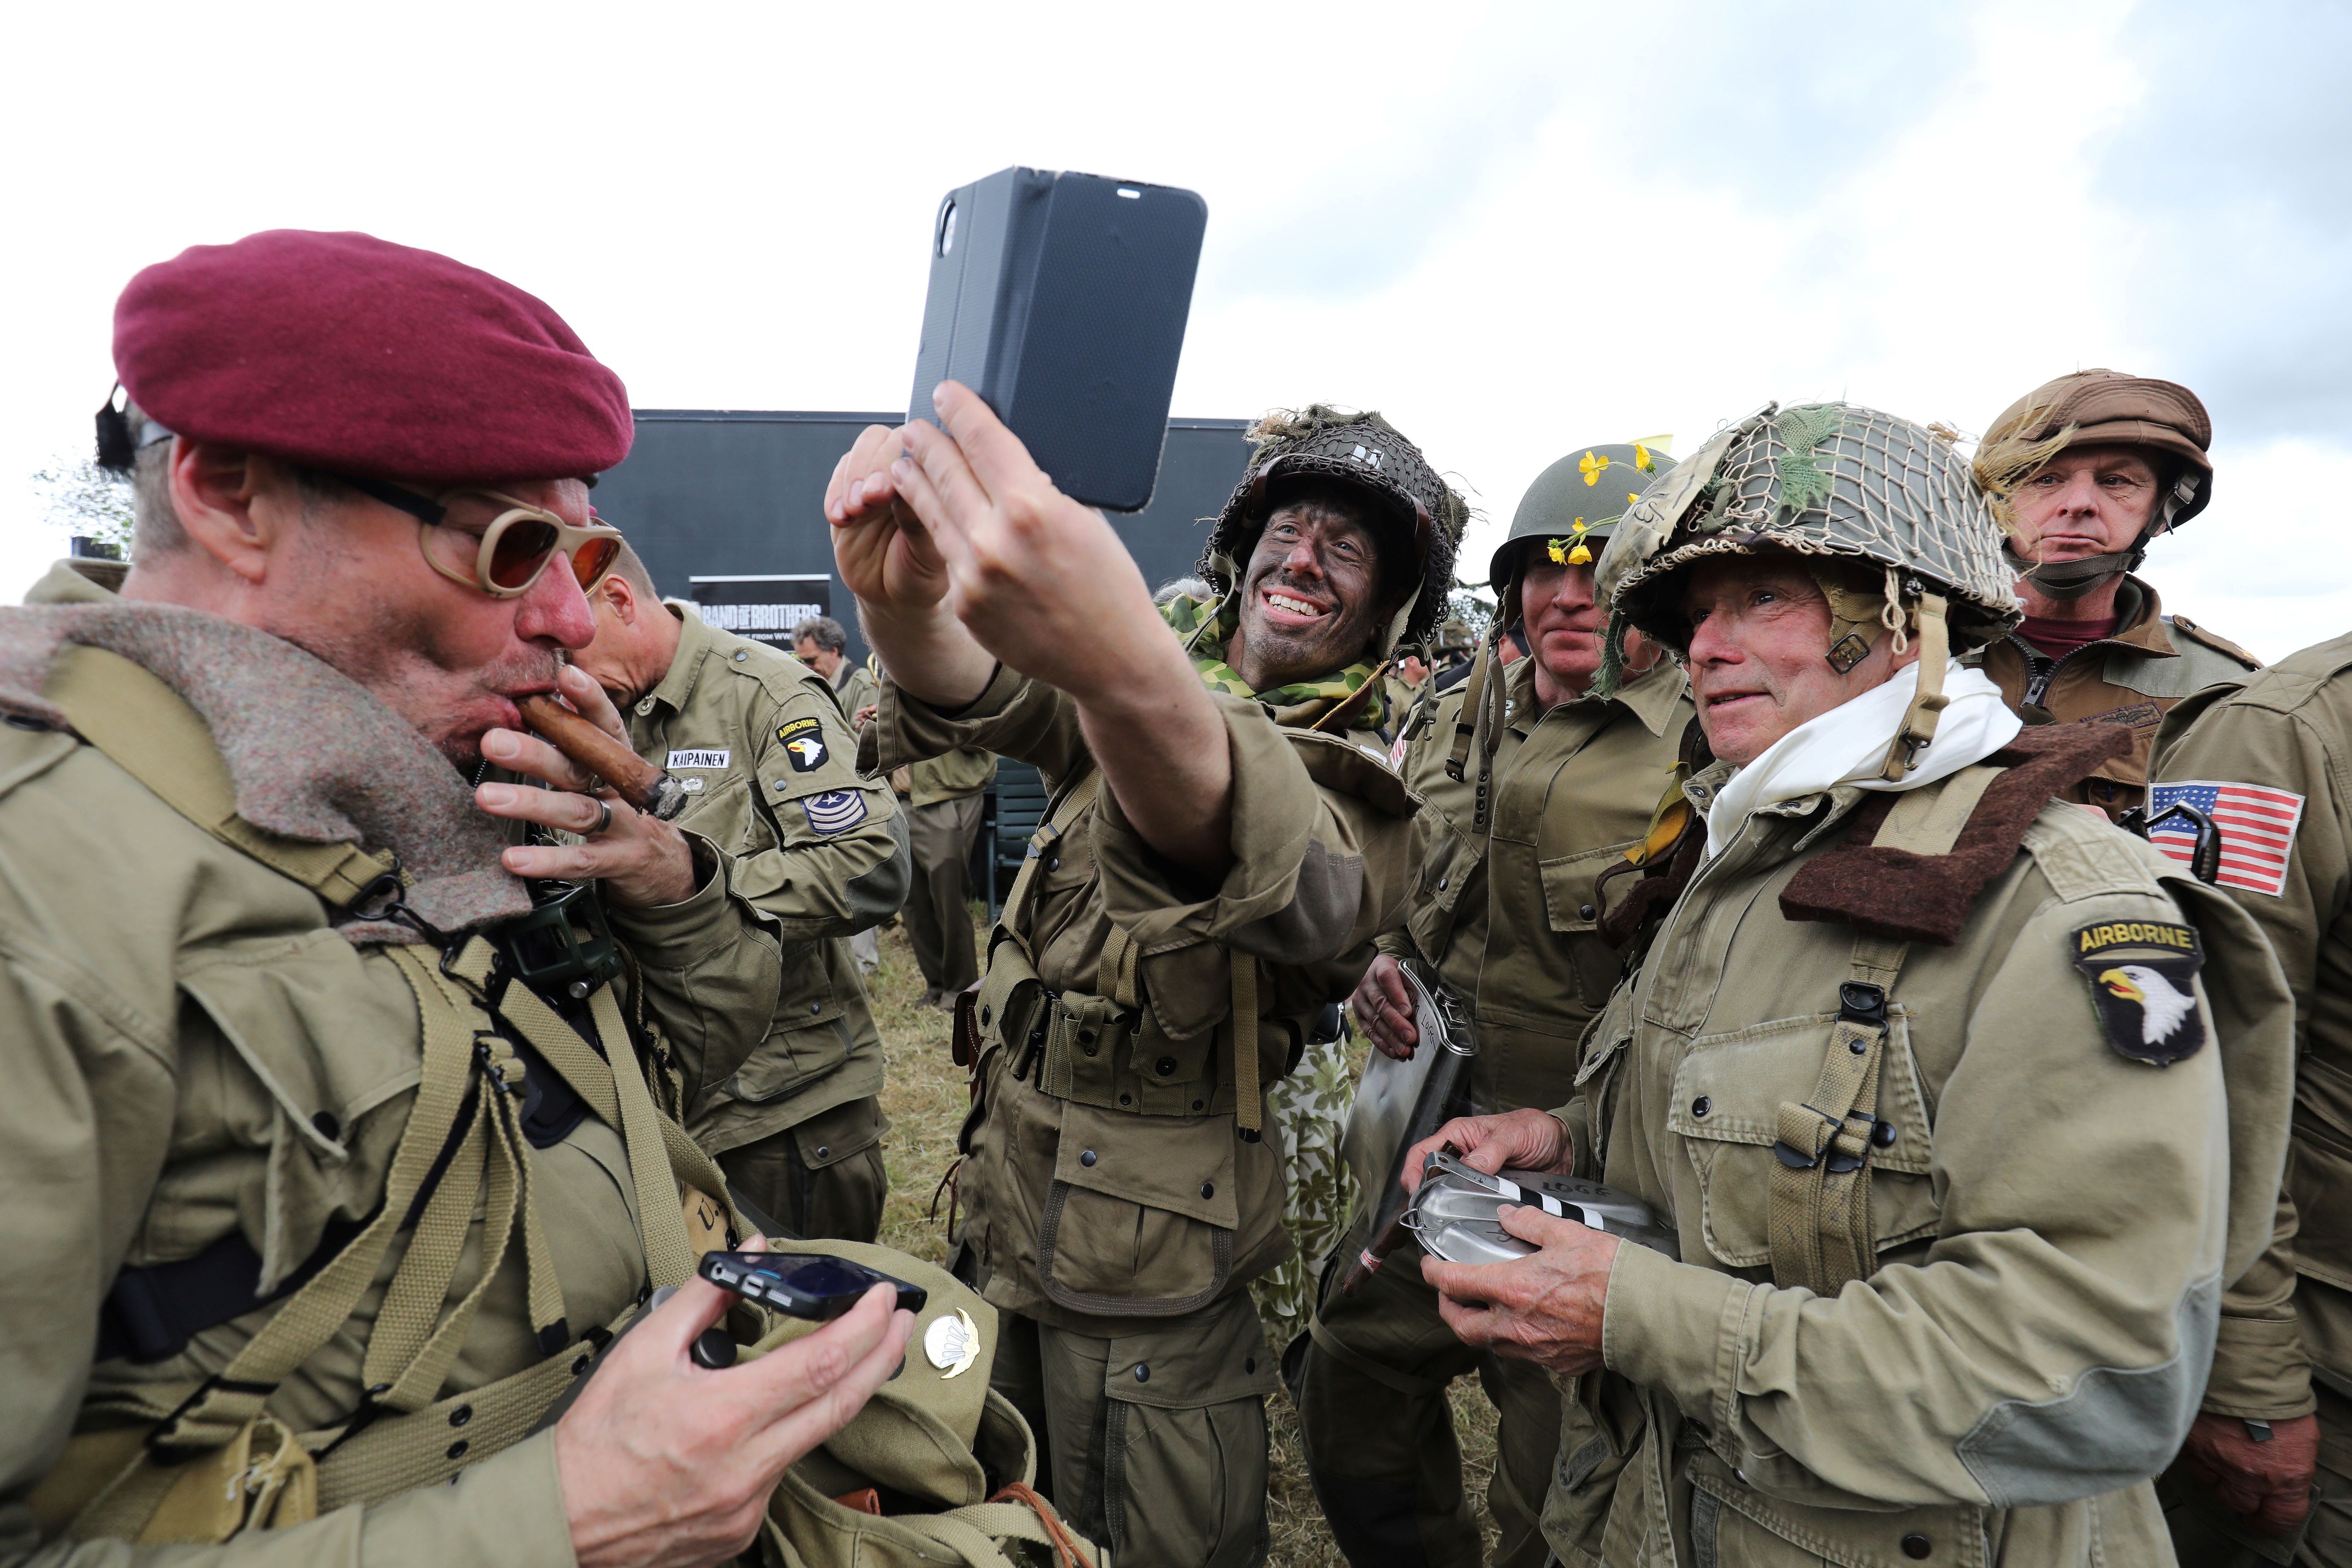 WWII enthusiasts dressed in period US and British paratrooper uniforms takes selfies during a parachute drop over Carentan, Normandy, north-western France, on June 5, 2019, as part of D-Day commemorations marking the 75th anniversary of the World War II Allied landings in Normandy. (Photo by Ludovic MARIN / AFP)